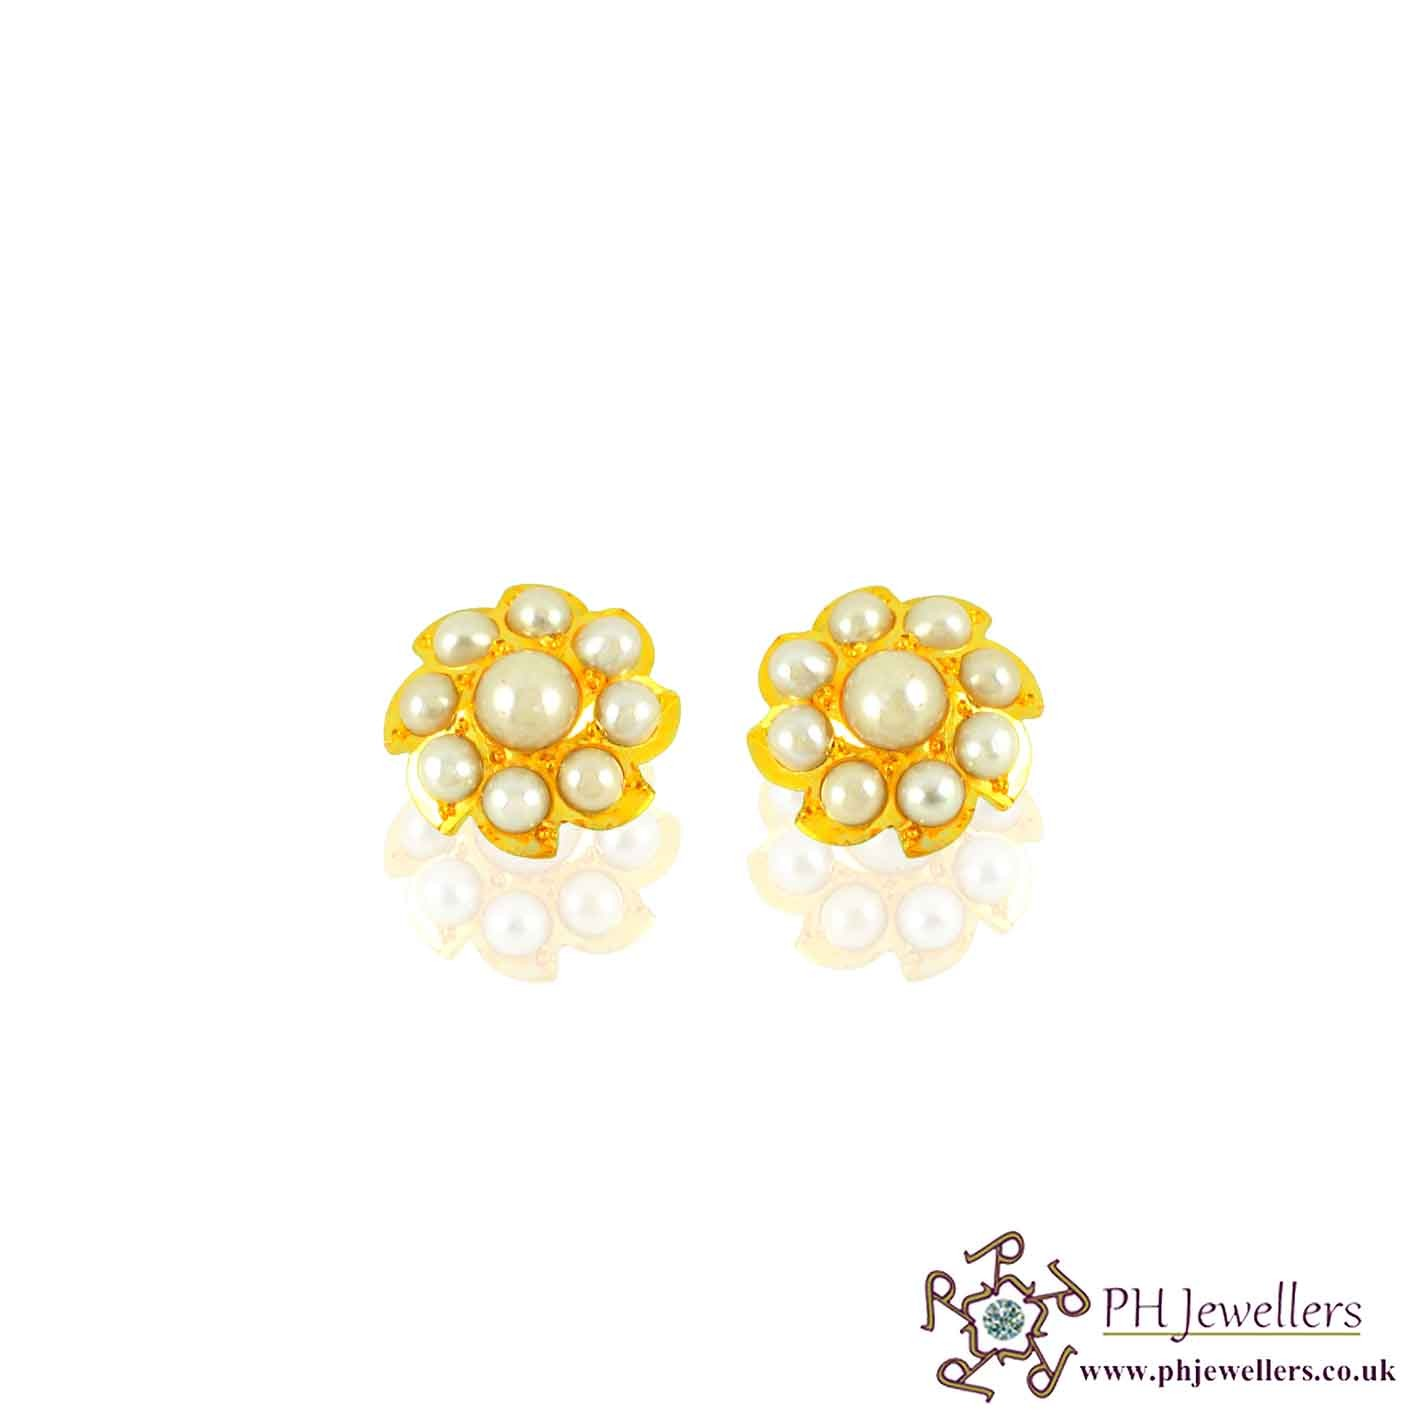 22CT 916 Hallmark Yellow Gold Tops Round Earring Pearl TE22